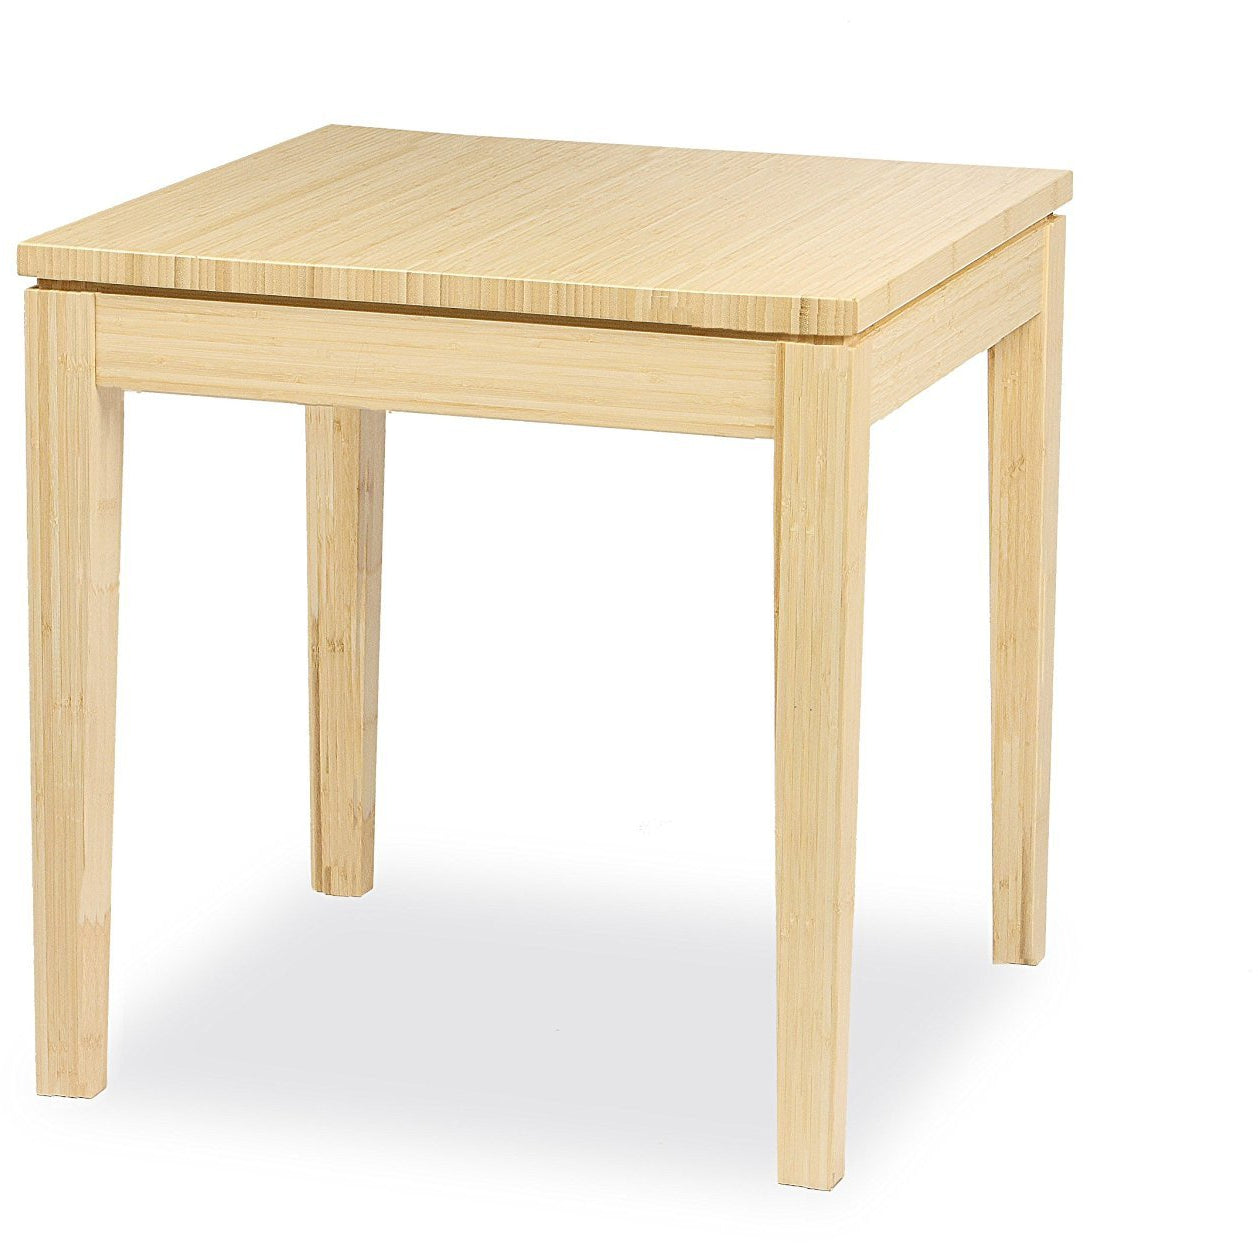 Bamboogle Brazil Bamboo Side Table in Beach 30-2020B